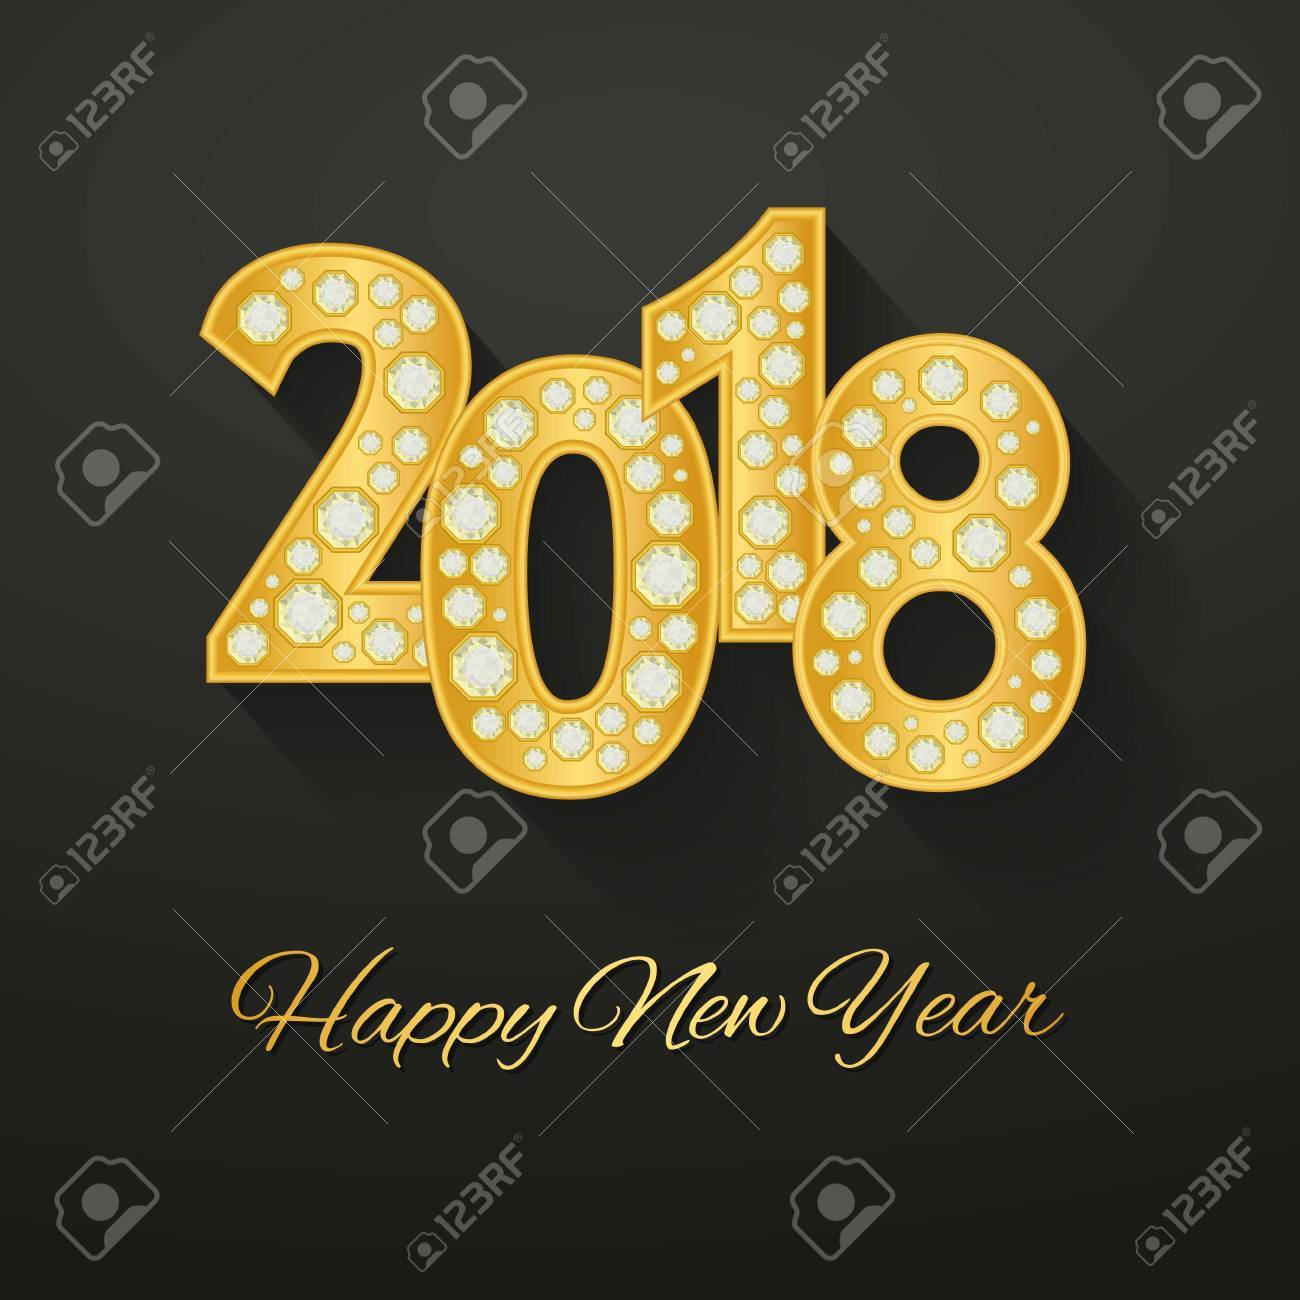 happy new year 2018 greeting card design with golden number and diamonds vector illustration